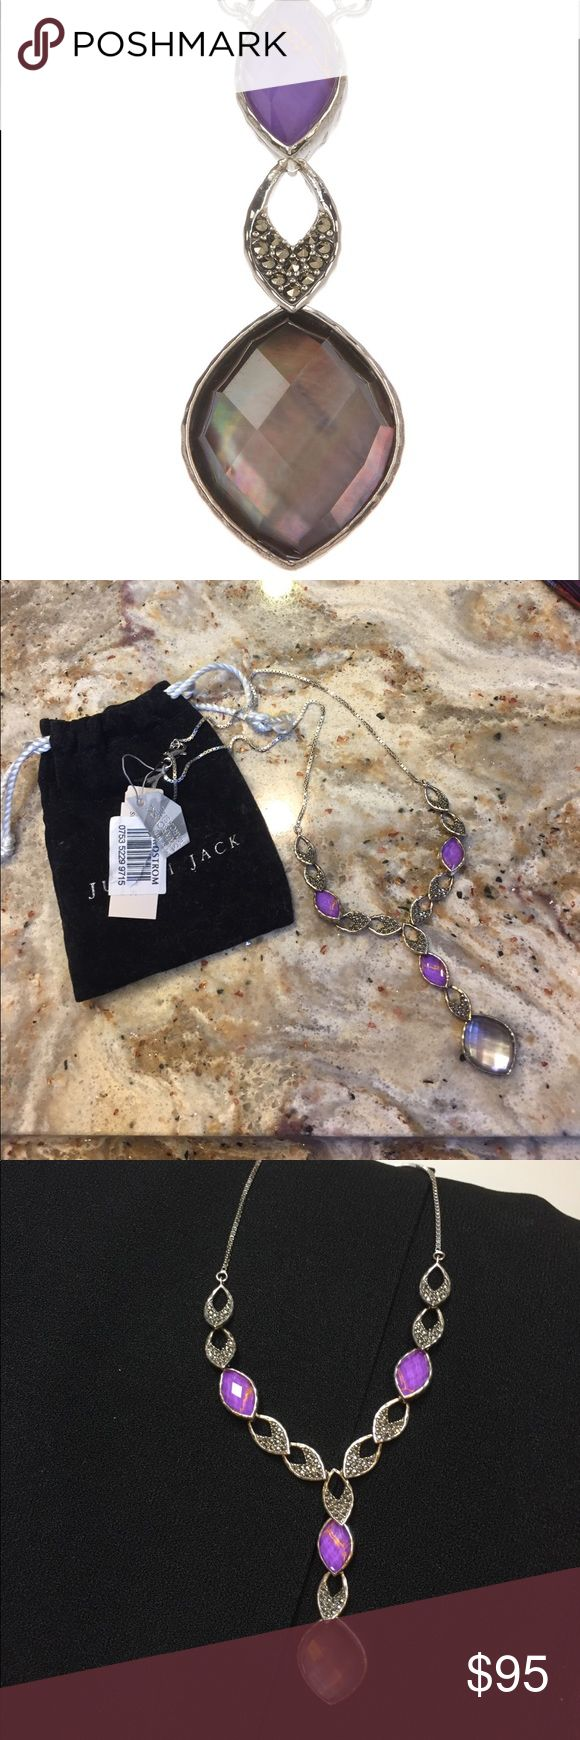 "NWT Judith Jack purple turquoise necklace Judith Jack - Sterling Silver Purple Turquoise, Swarovski Marcasite & Black Mother of Pearl Pendant Necklace. Two options 10"" or 12"" length judith jack Jewelry Necklaces"